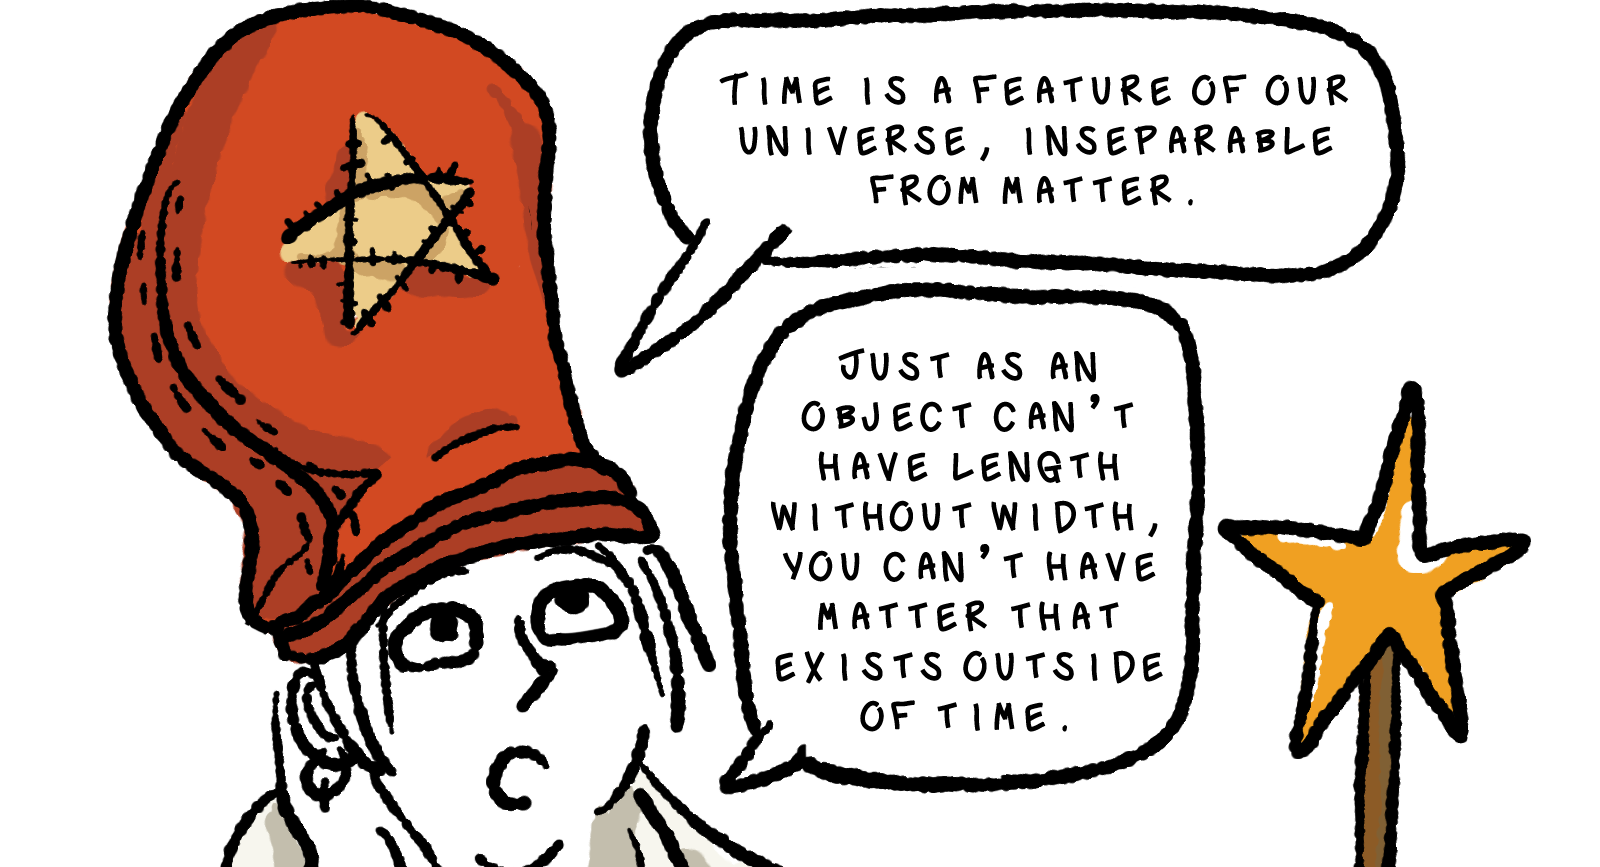 In a borderless panel, Elk is wearing a large red hat with a yellow star on it, which a tiny arrow pionting at him suggests he is dressed up in reference to a time mage from Final Fantasy. While brandishing his yellow wand that also has a star motif, he explains, Time is a feature of our universe, inseparable from matter.